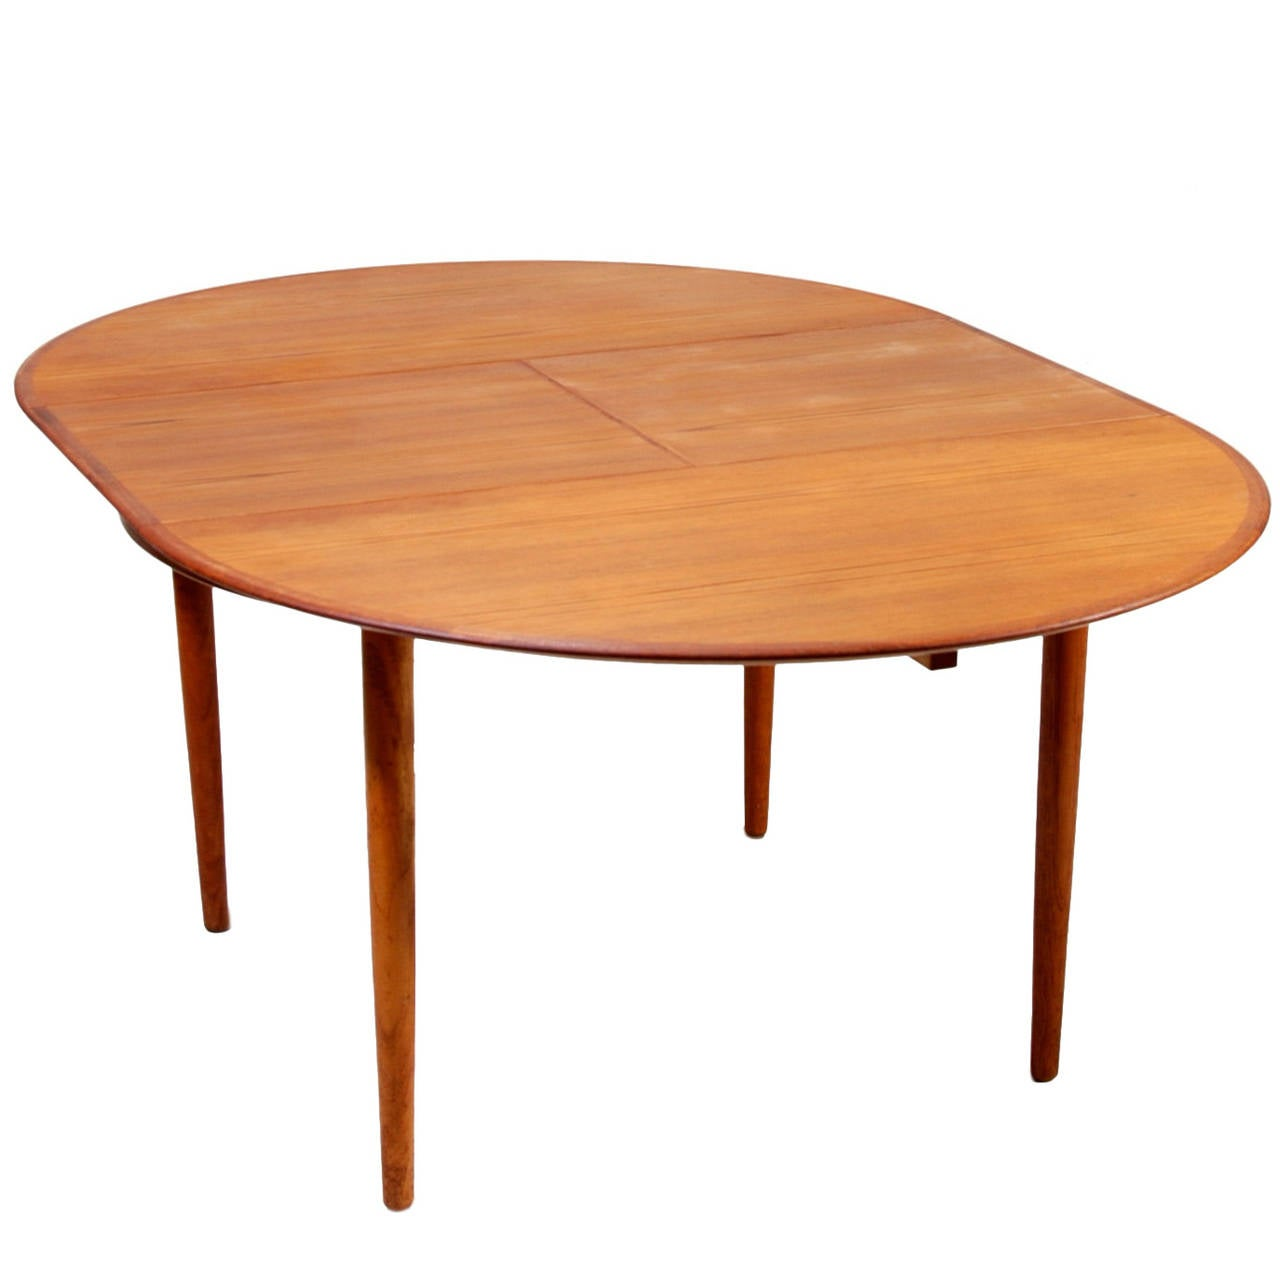 Round danish modern teak dining table by dyrlund at 1stdibs for Danish modern dining room table